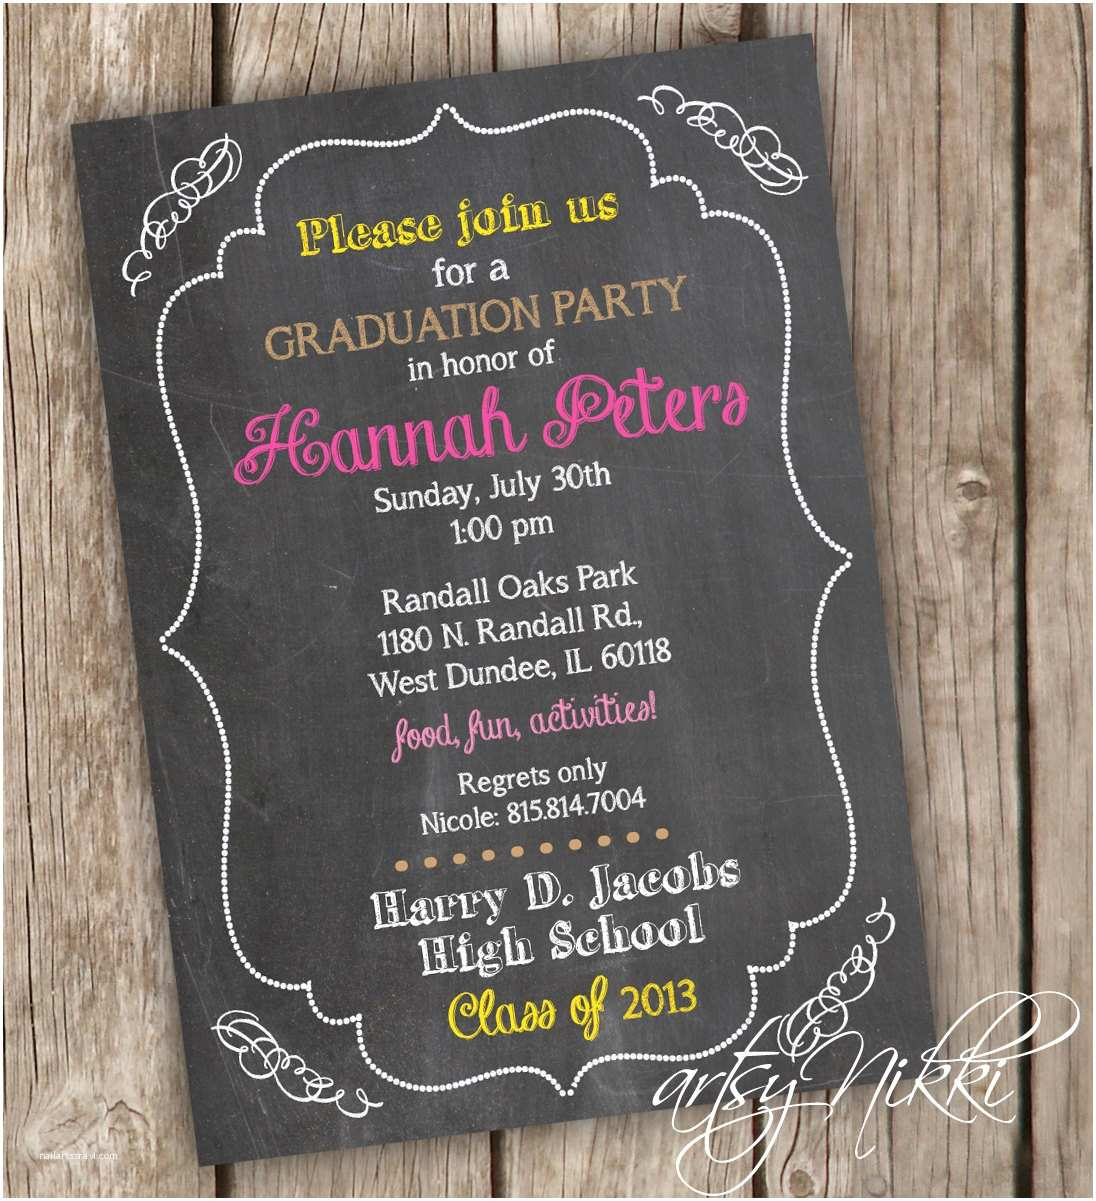 Graduation Party Invitations Graduation Party Invitation Chalkboard Style Graduation